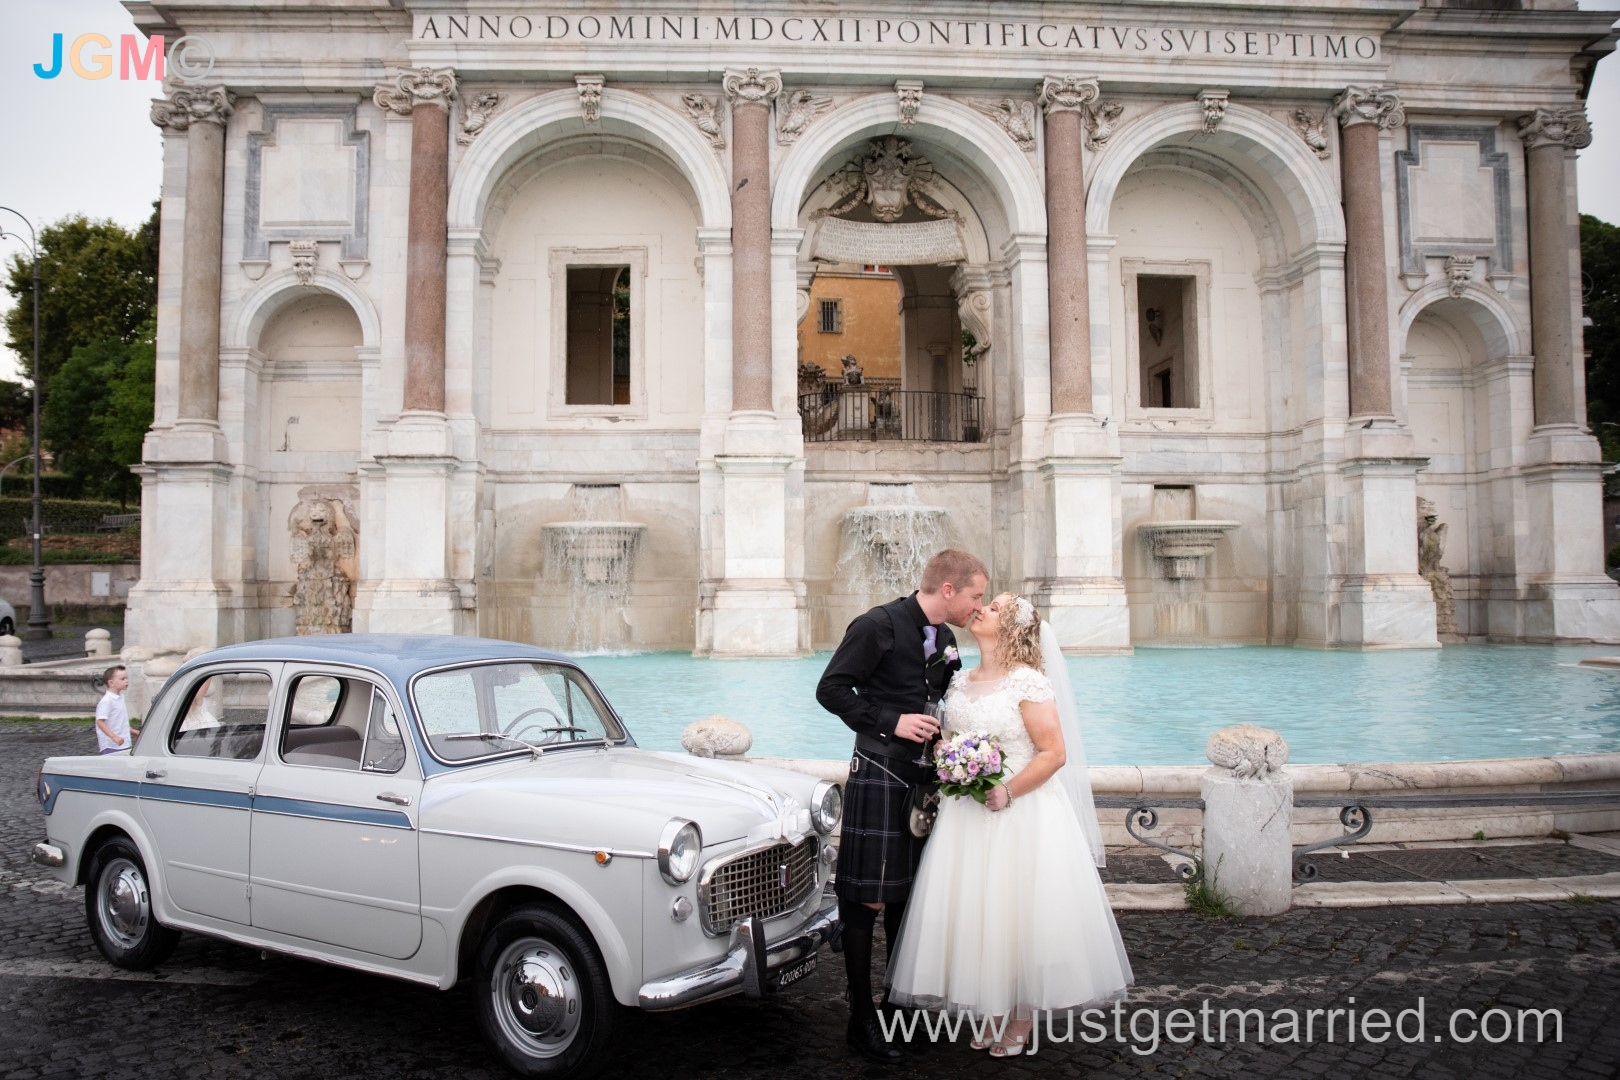 weddings, rome, photos, vintage, exclusive, marriage, itaian officiant, civil weddings